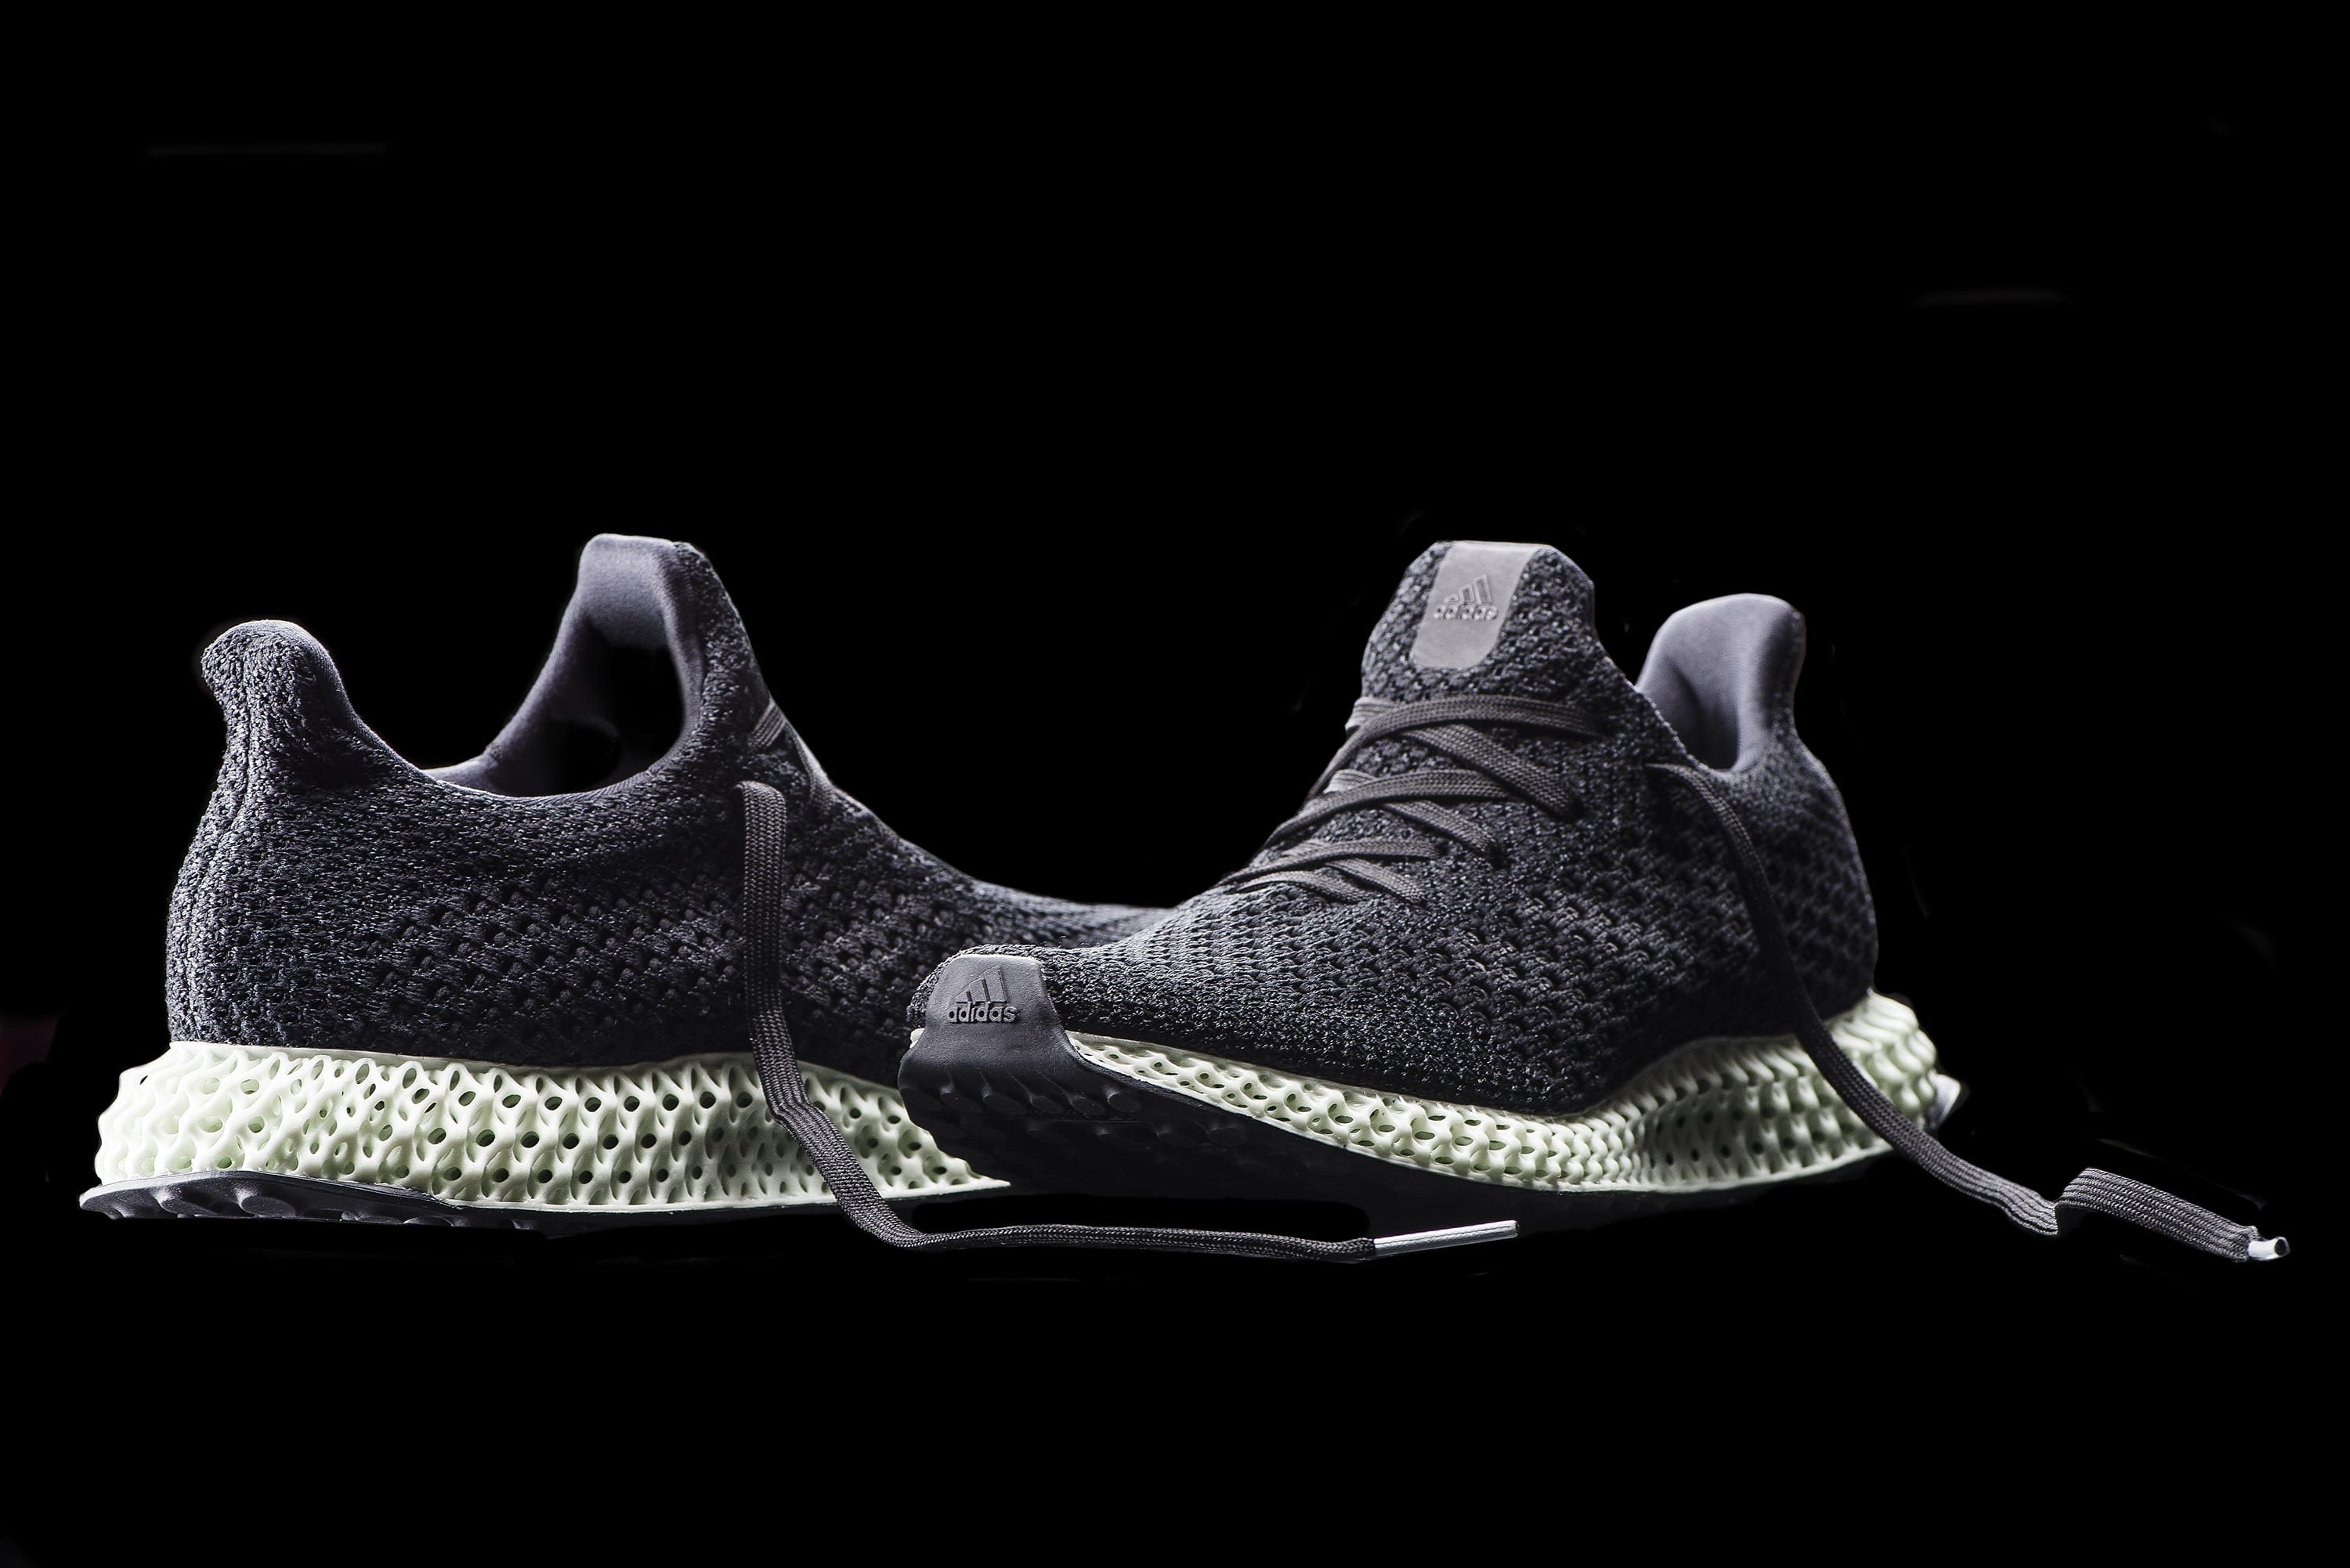 af60de5a Adidas is going to sell 100,000 sneakers with 3-D printed soles